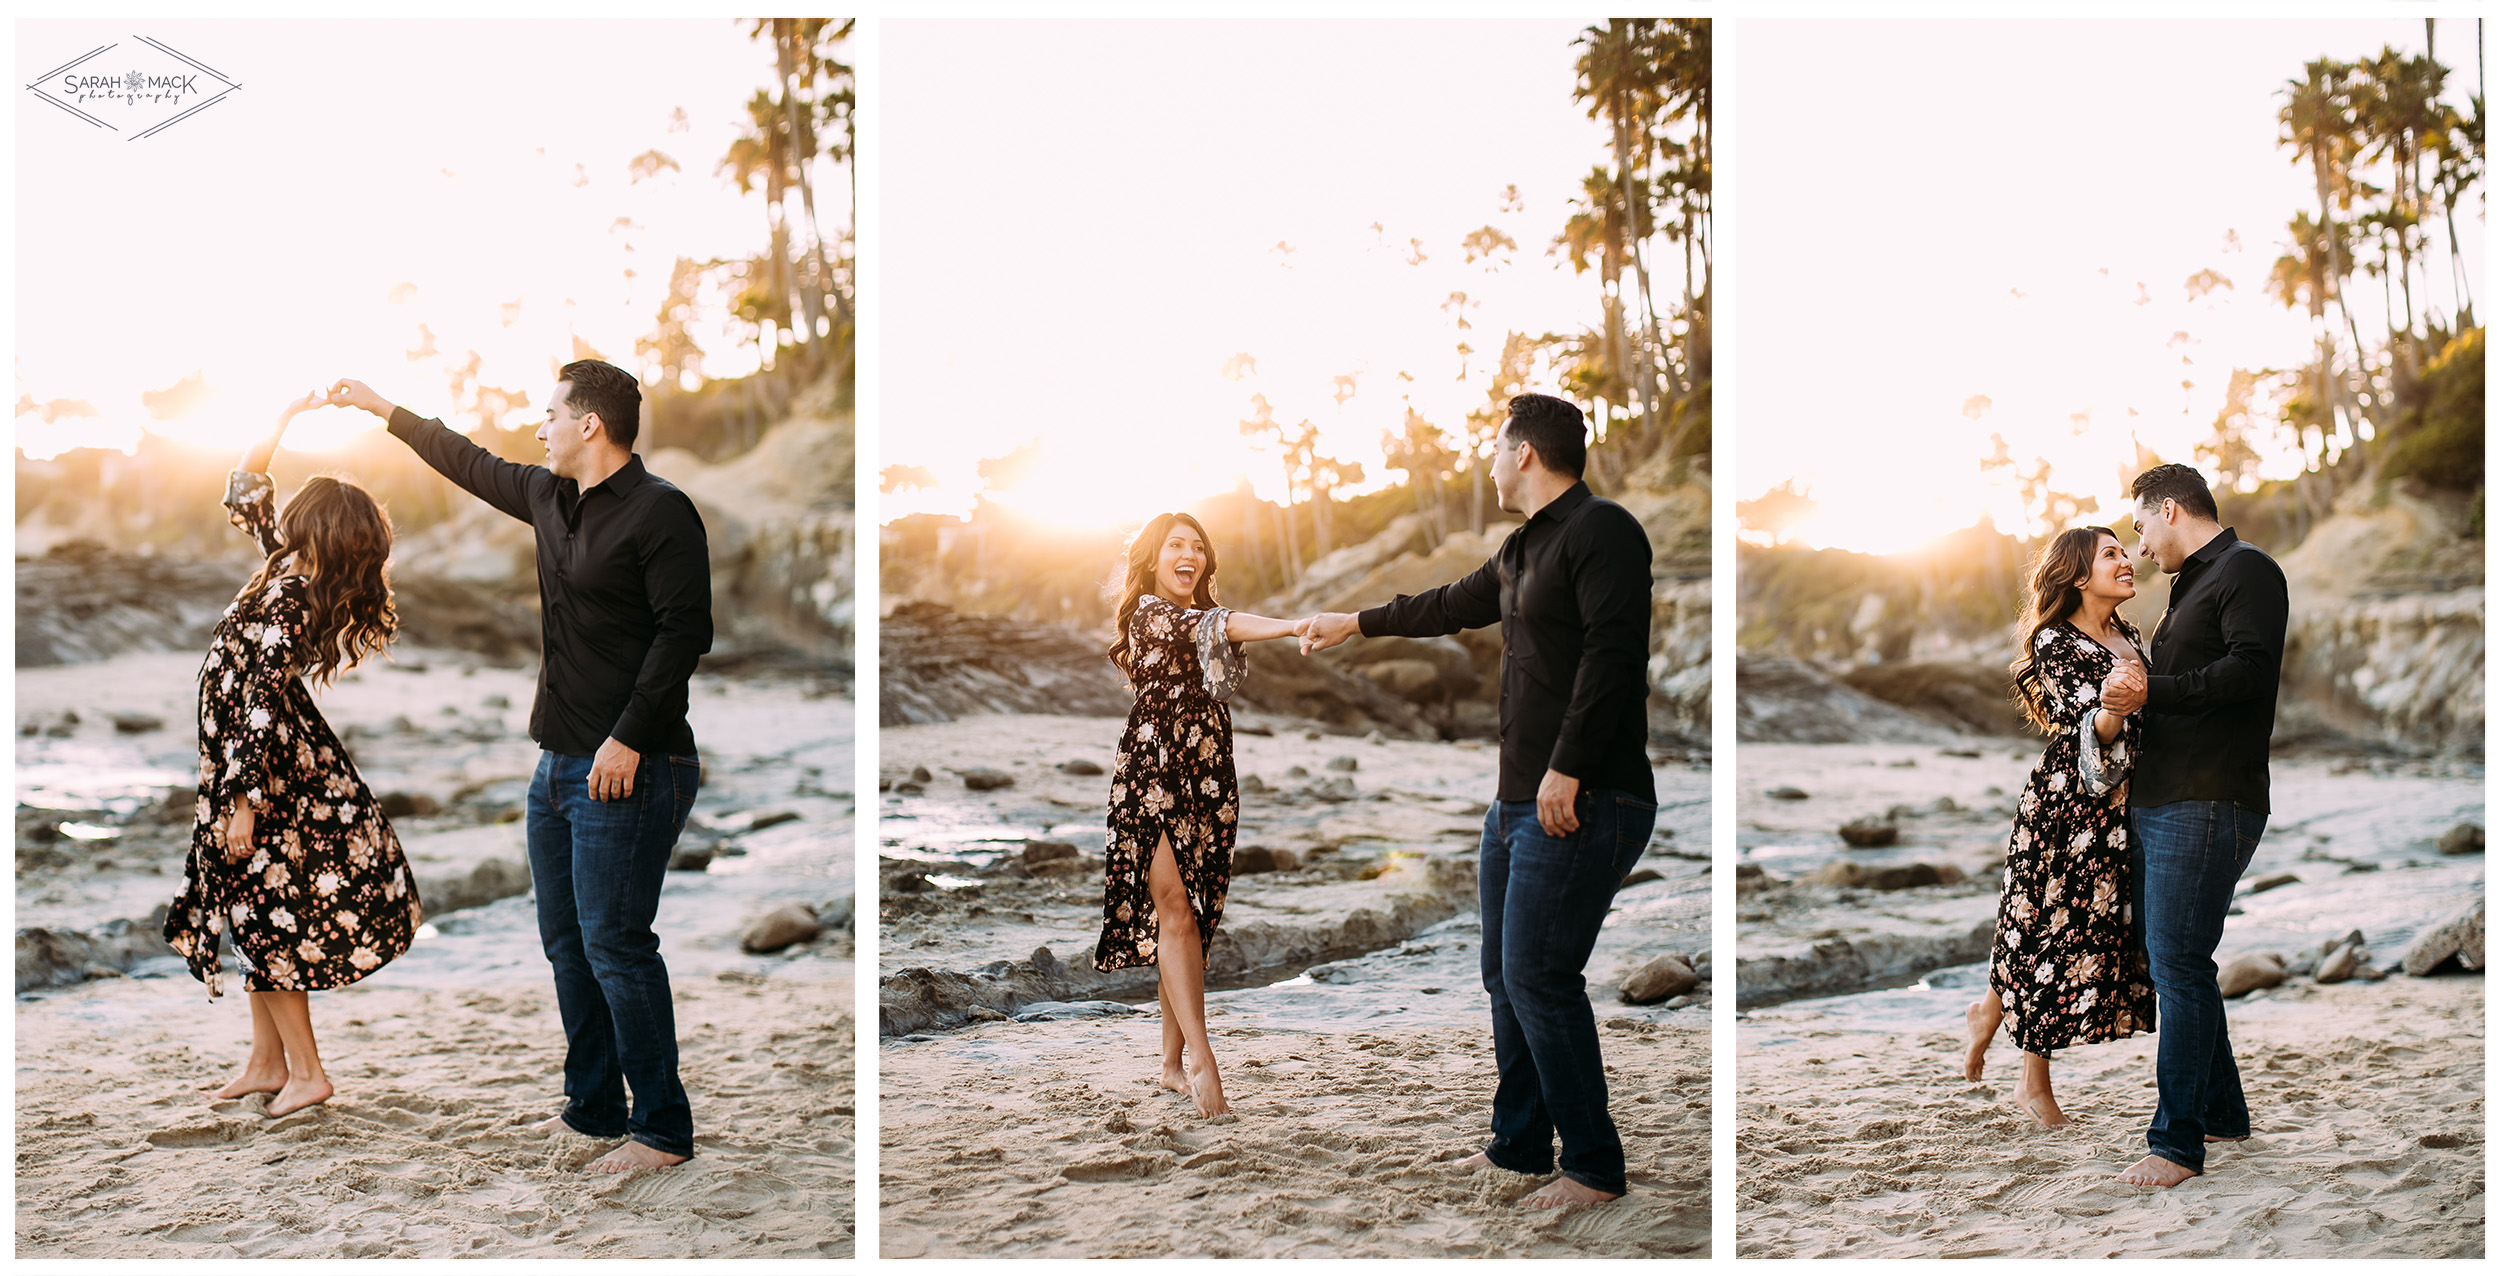 CN-Orange-County-Ocean-Engagement-Photography-6.jpg